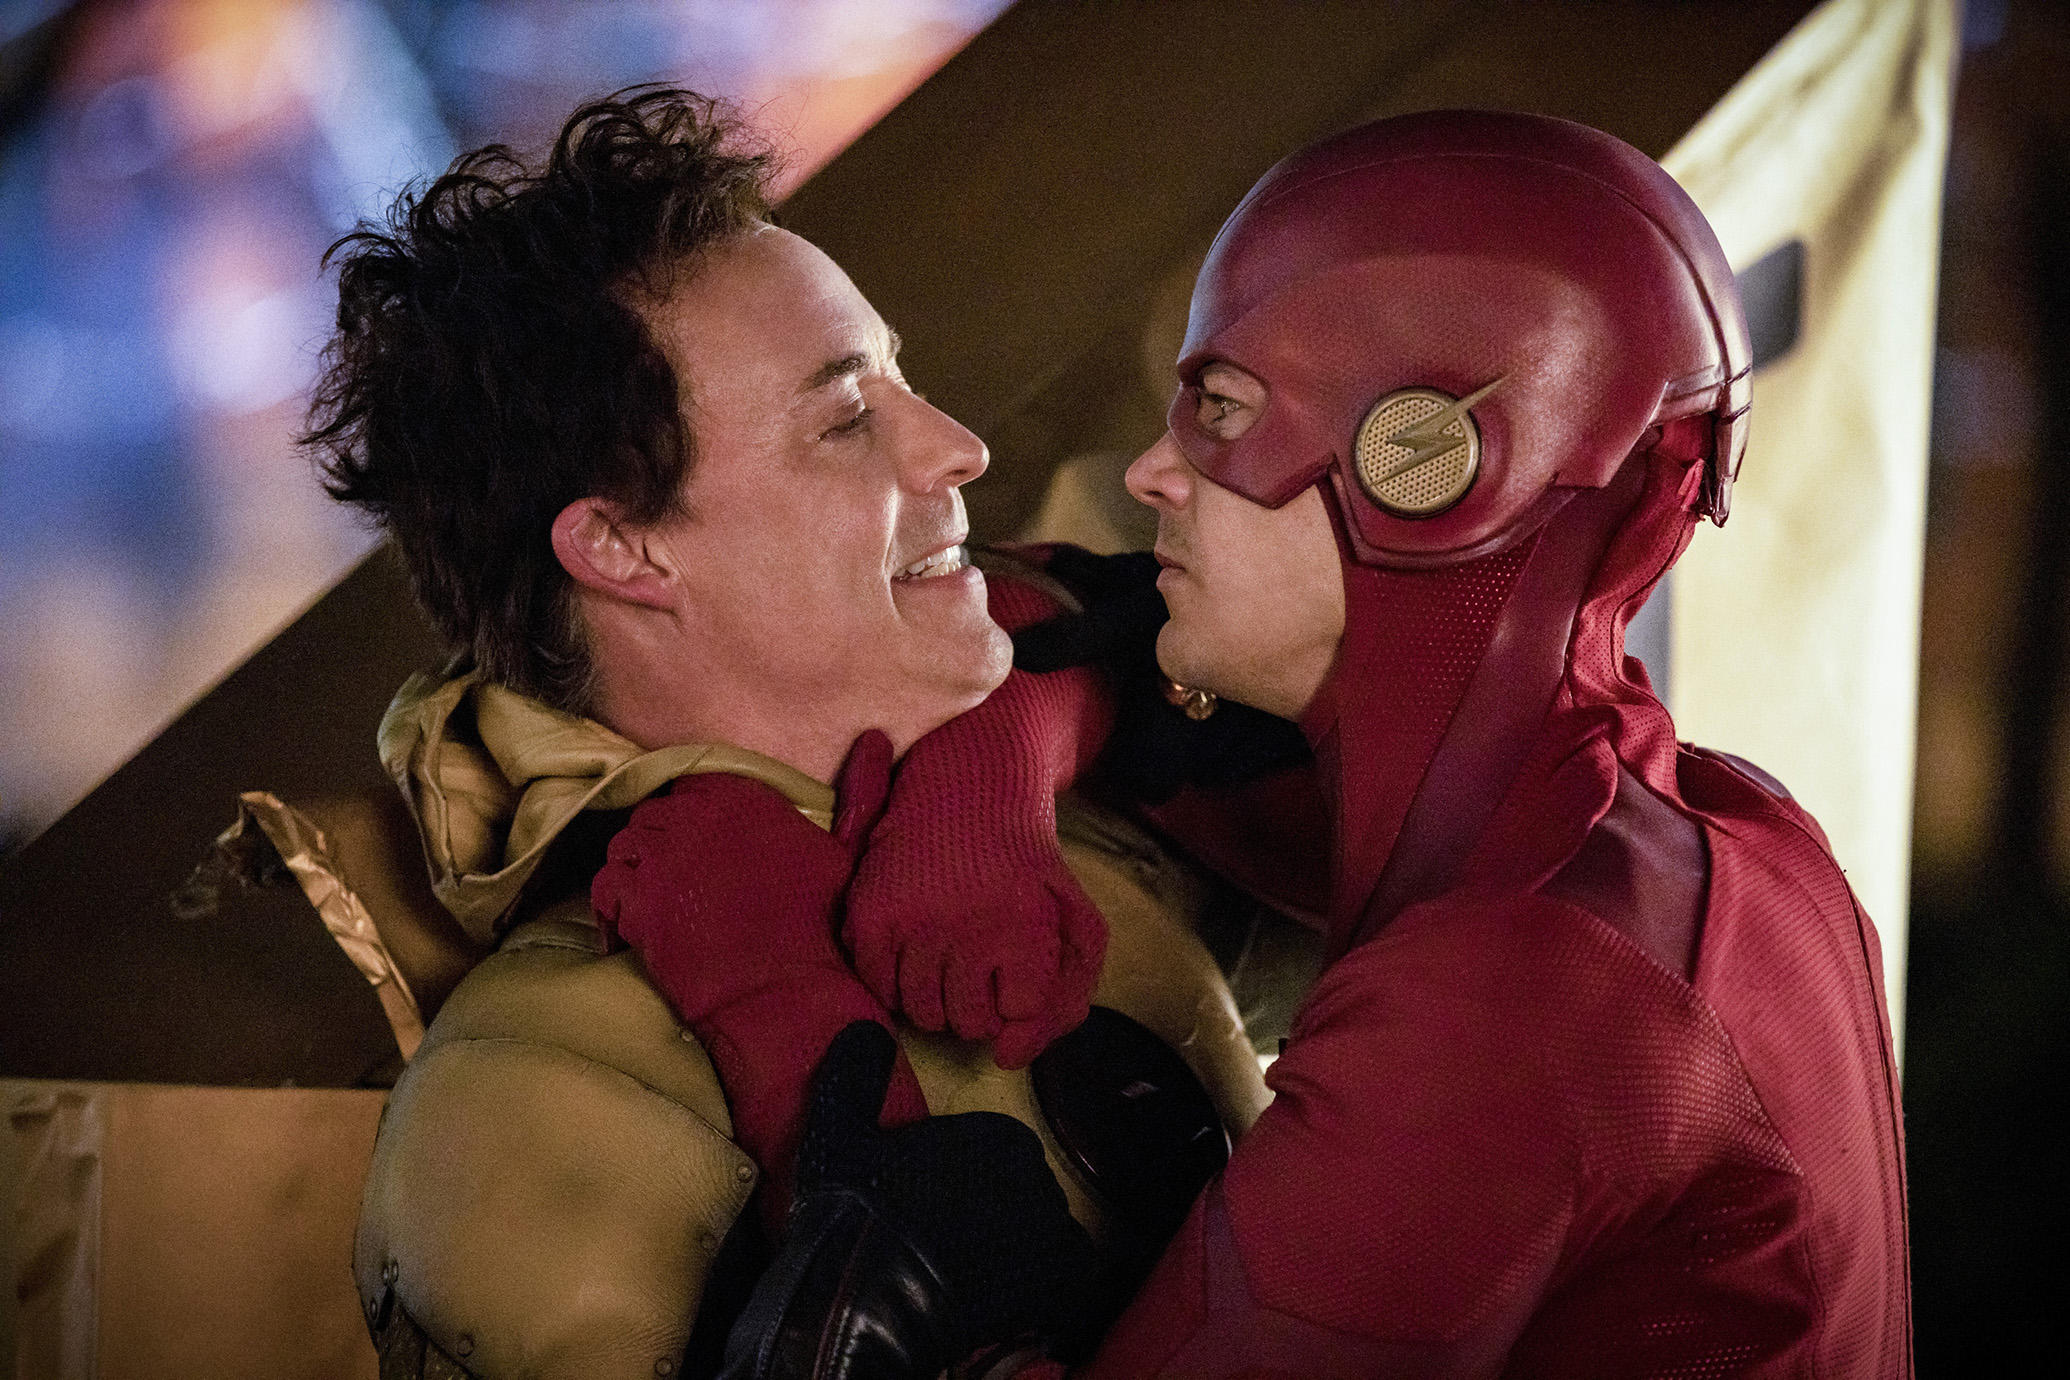 the flash season 1 episode 12 vidcav